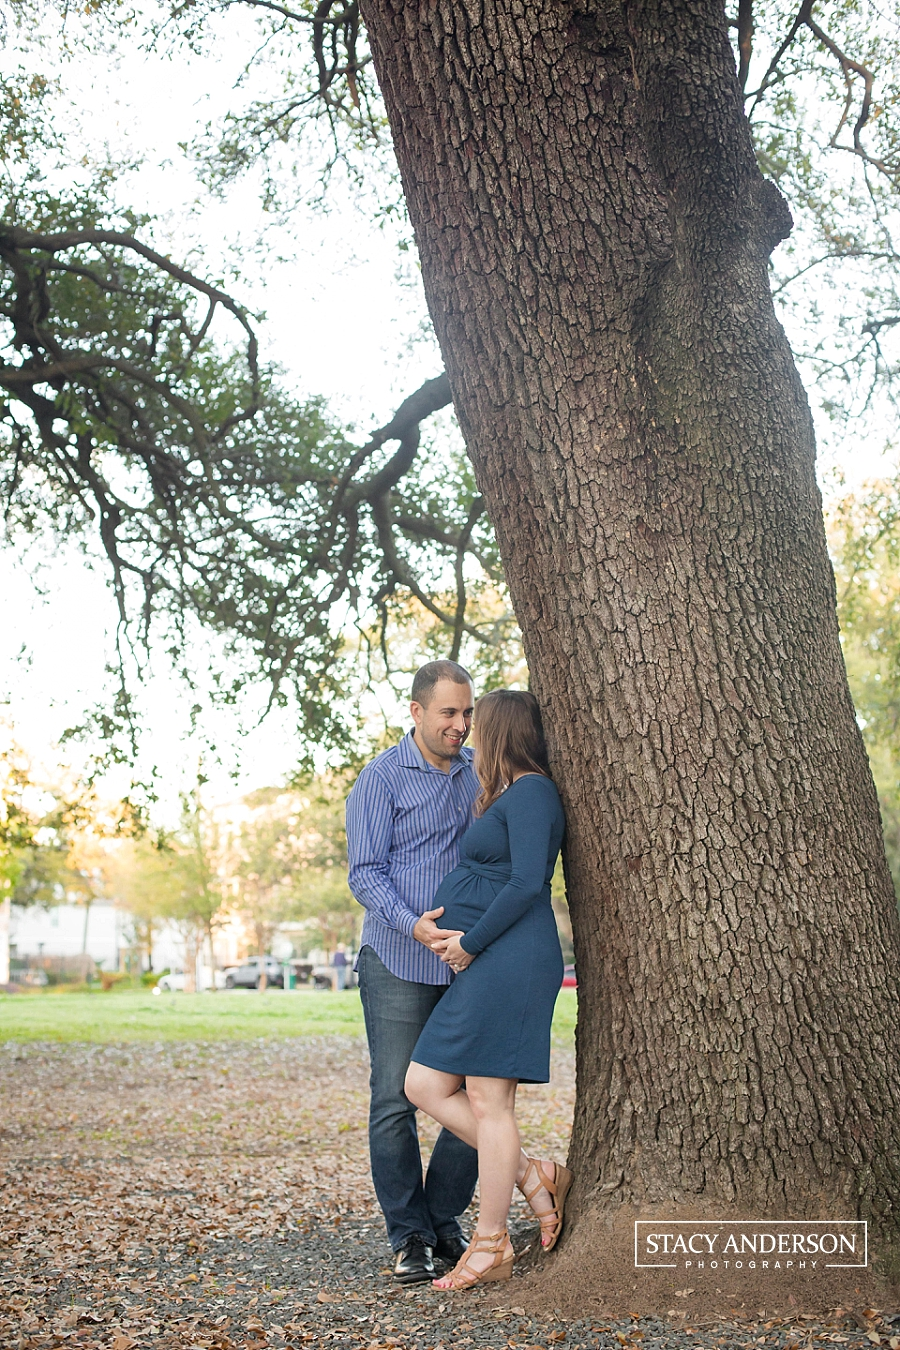 Stacy Anderson Photography Houston Maternity Photographer_1194